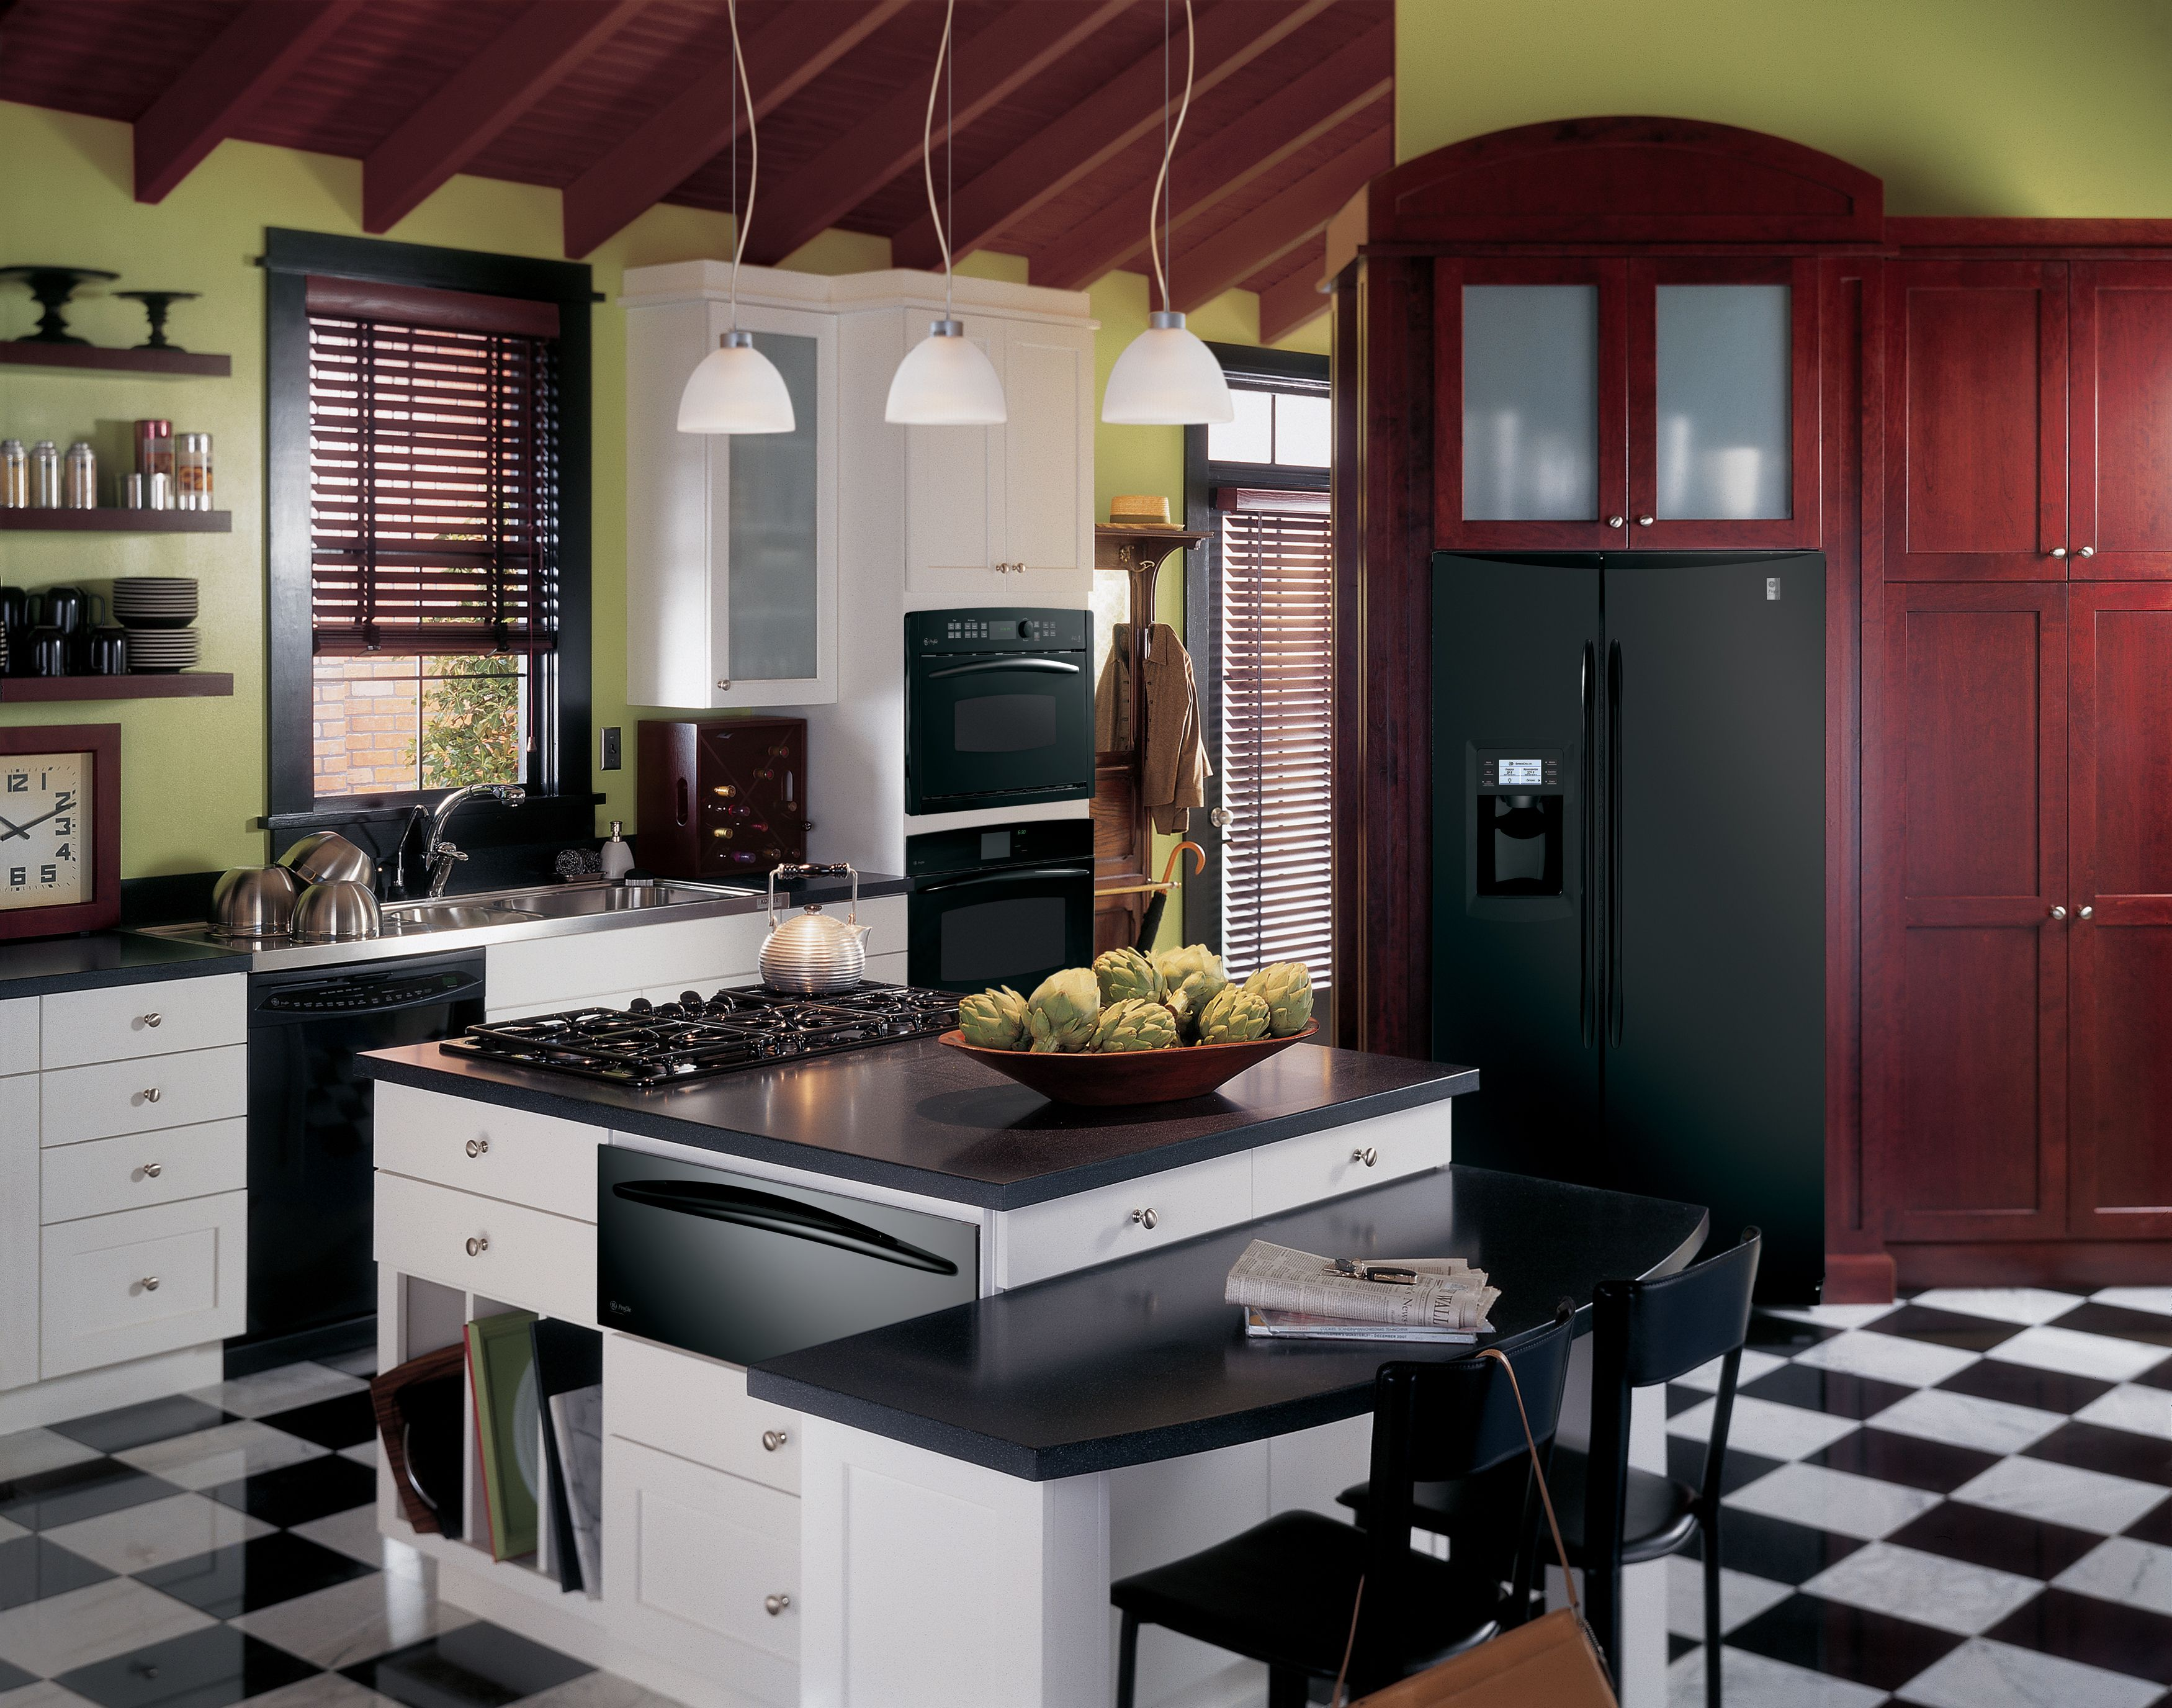 GE Profile #kitchen With Black #appliances, Green Walls